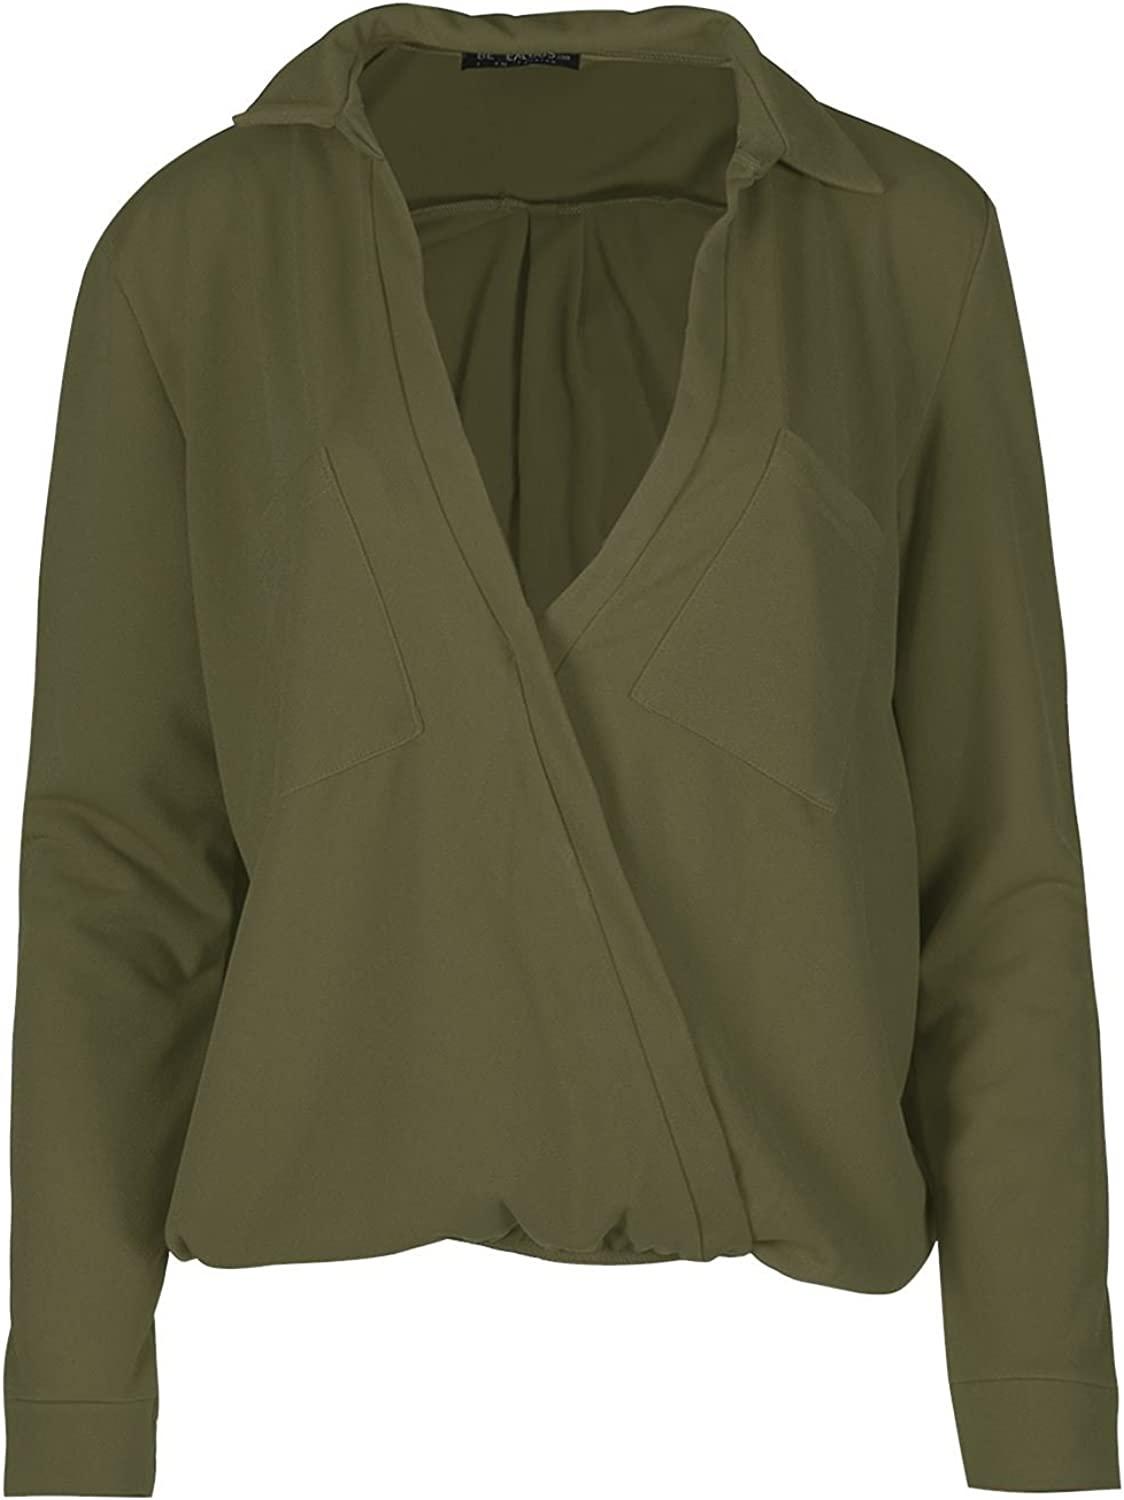 Womens Tops Ladies Long Sleeve Front Wrap Over Baggy Front Pockets Collared Top